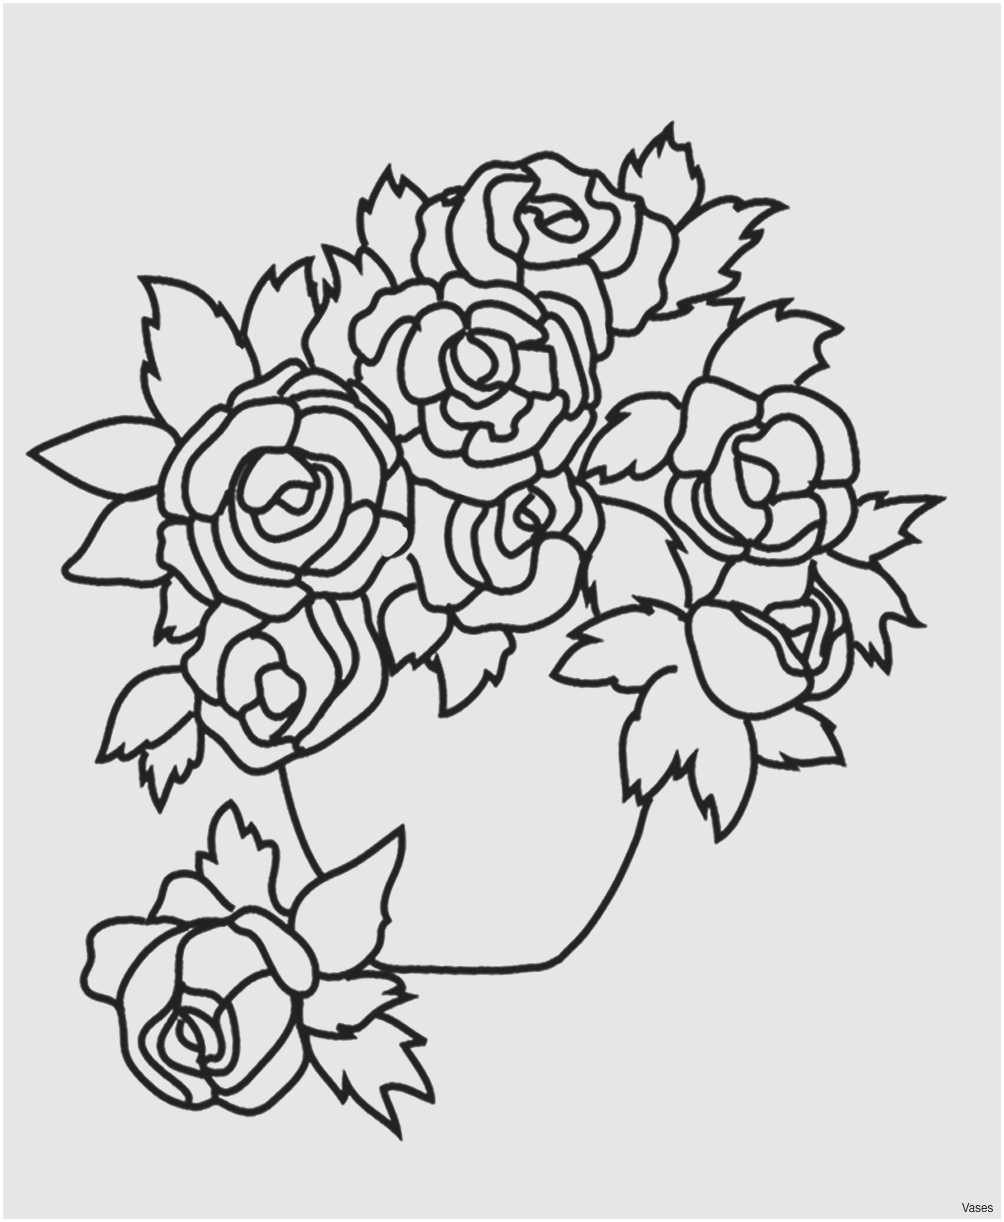 glass vase with top of 16 lovely flowers in a tall white vase bogekompresorturkiye com regarding vases flowers in vase coloring pages a flower top i 0d flowers awesome